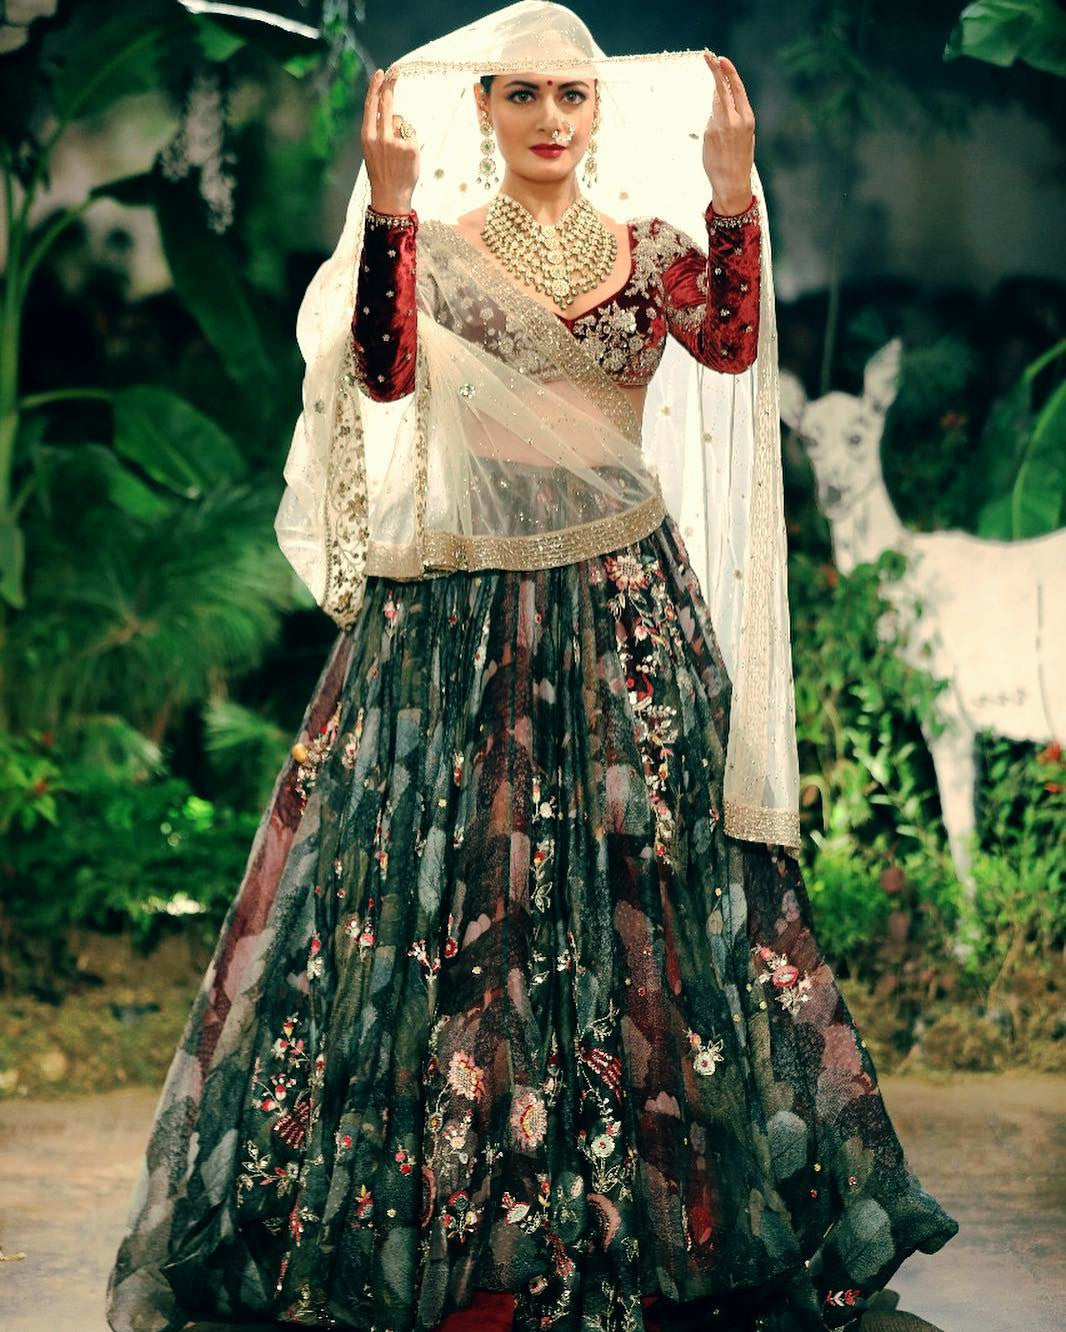 Dia Mirza made a graceful entrance as a showstopper at Anju Modi's shows